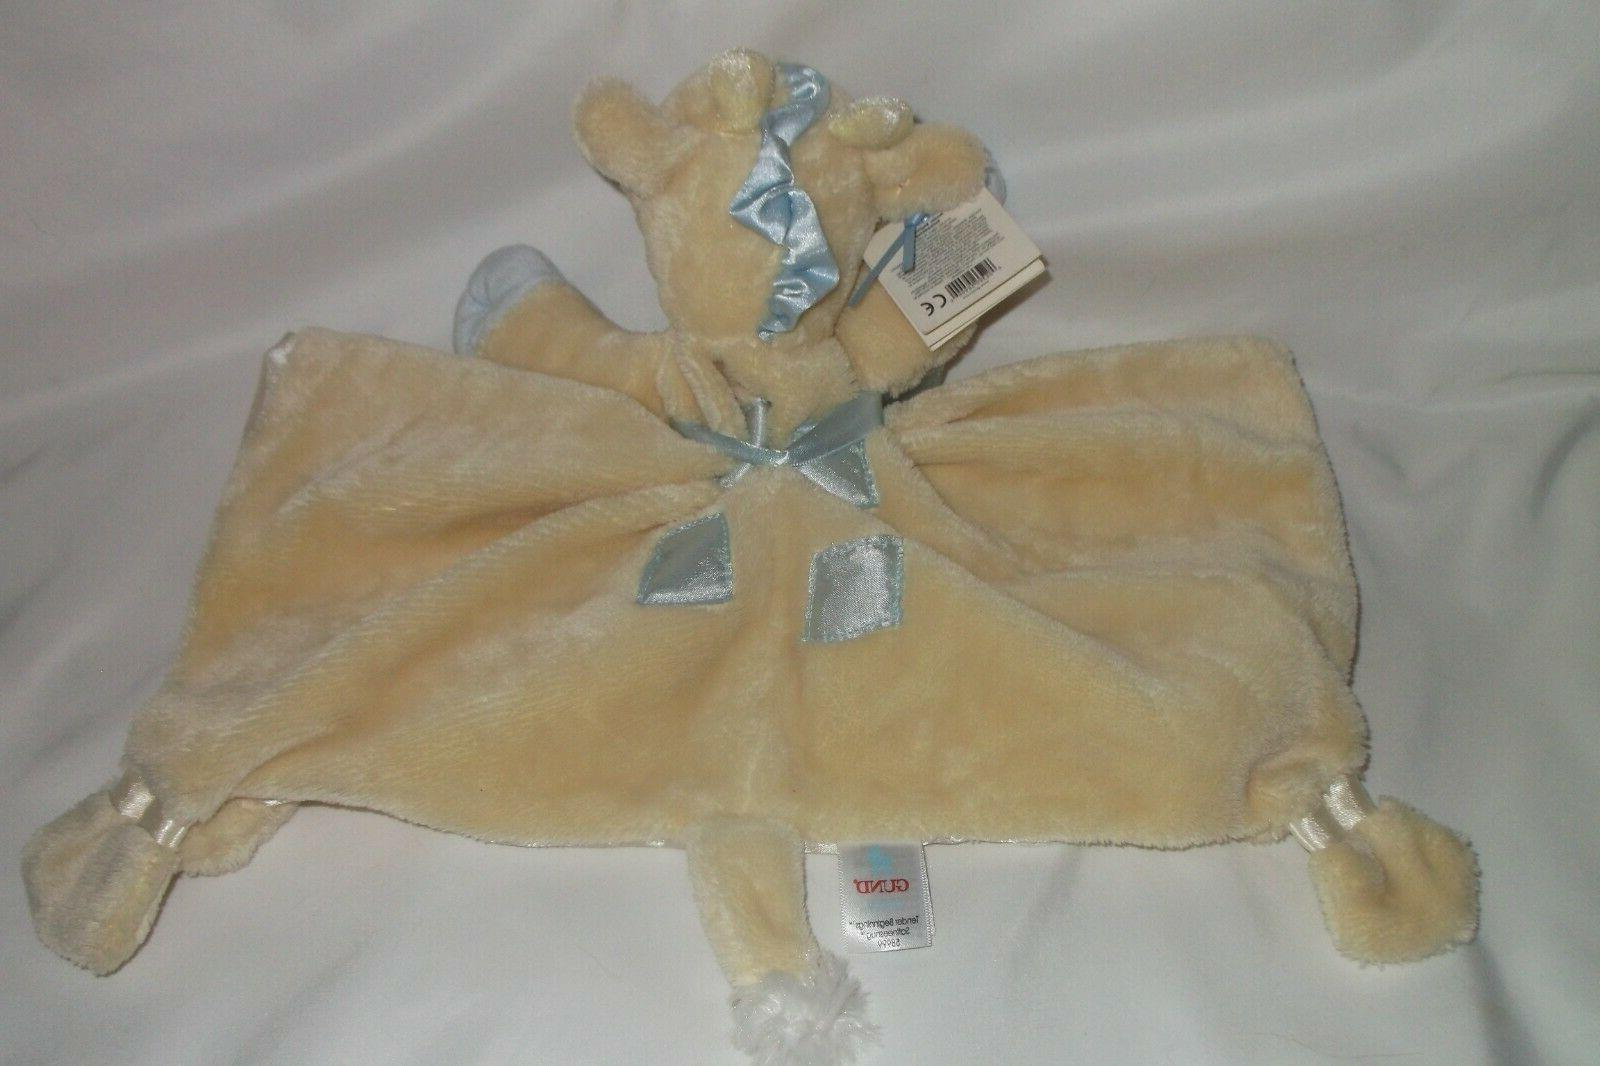 Gund Baby Tender Beginnings Security Blanket